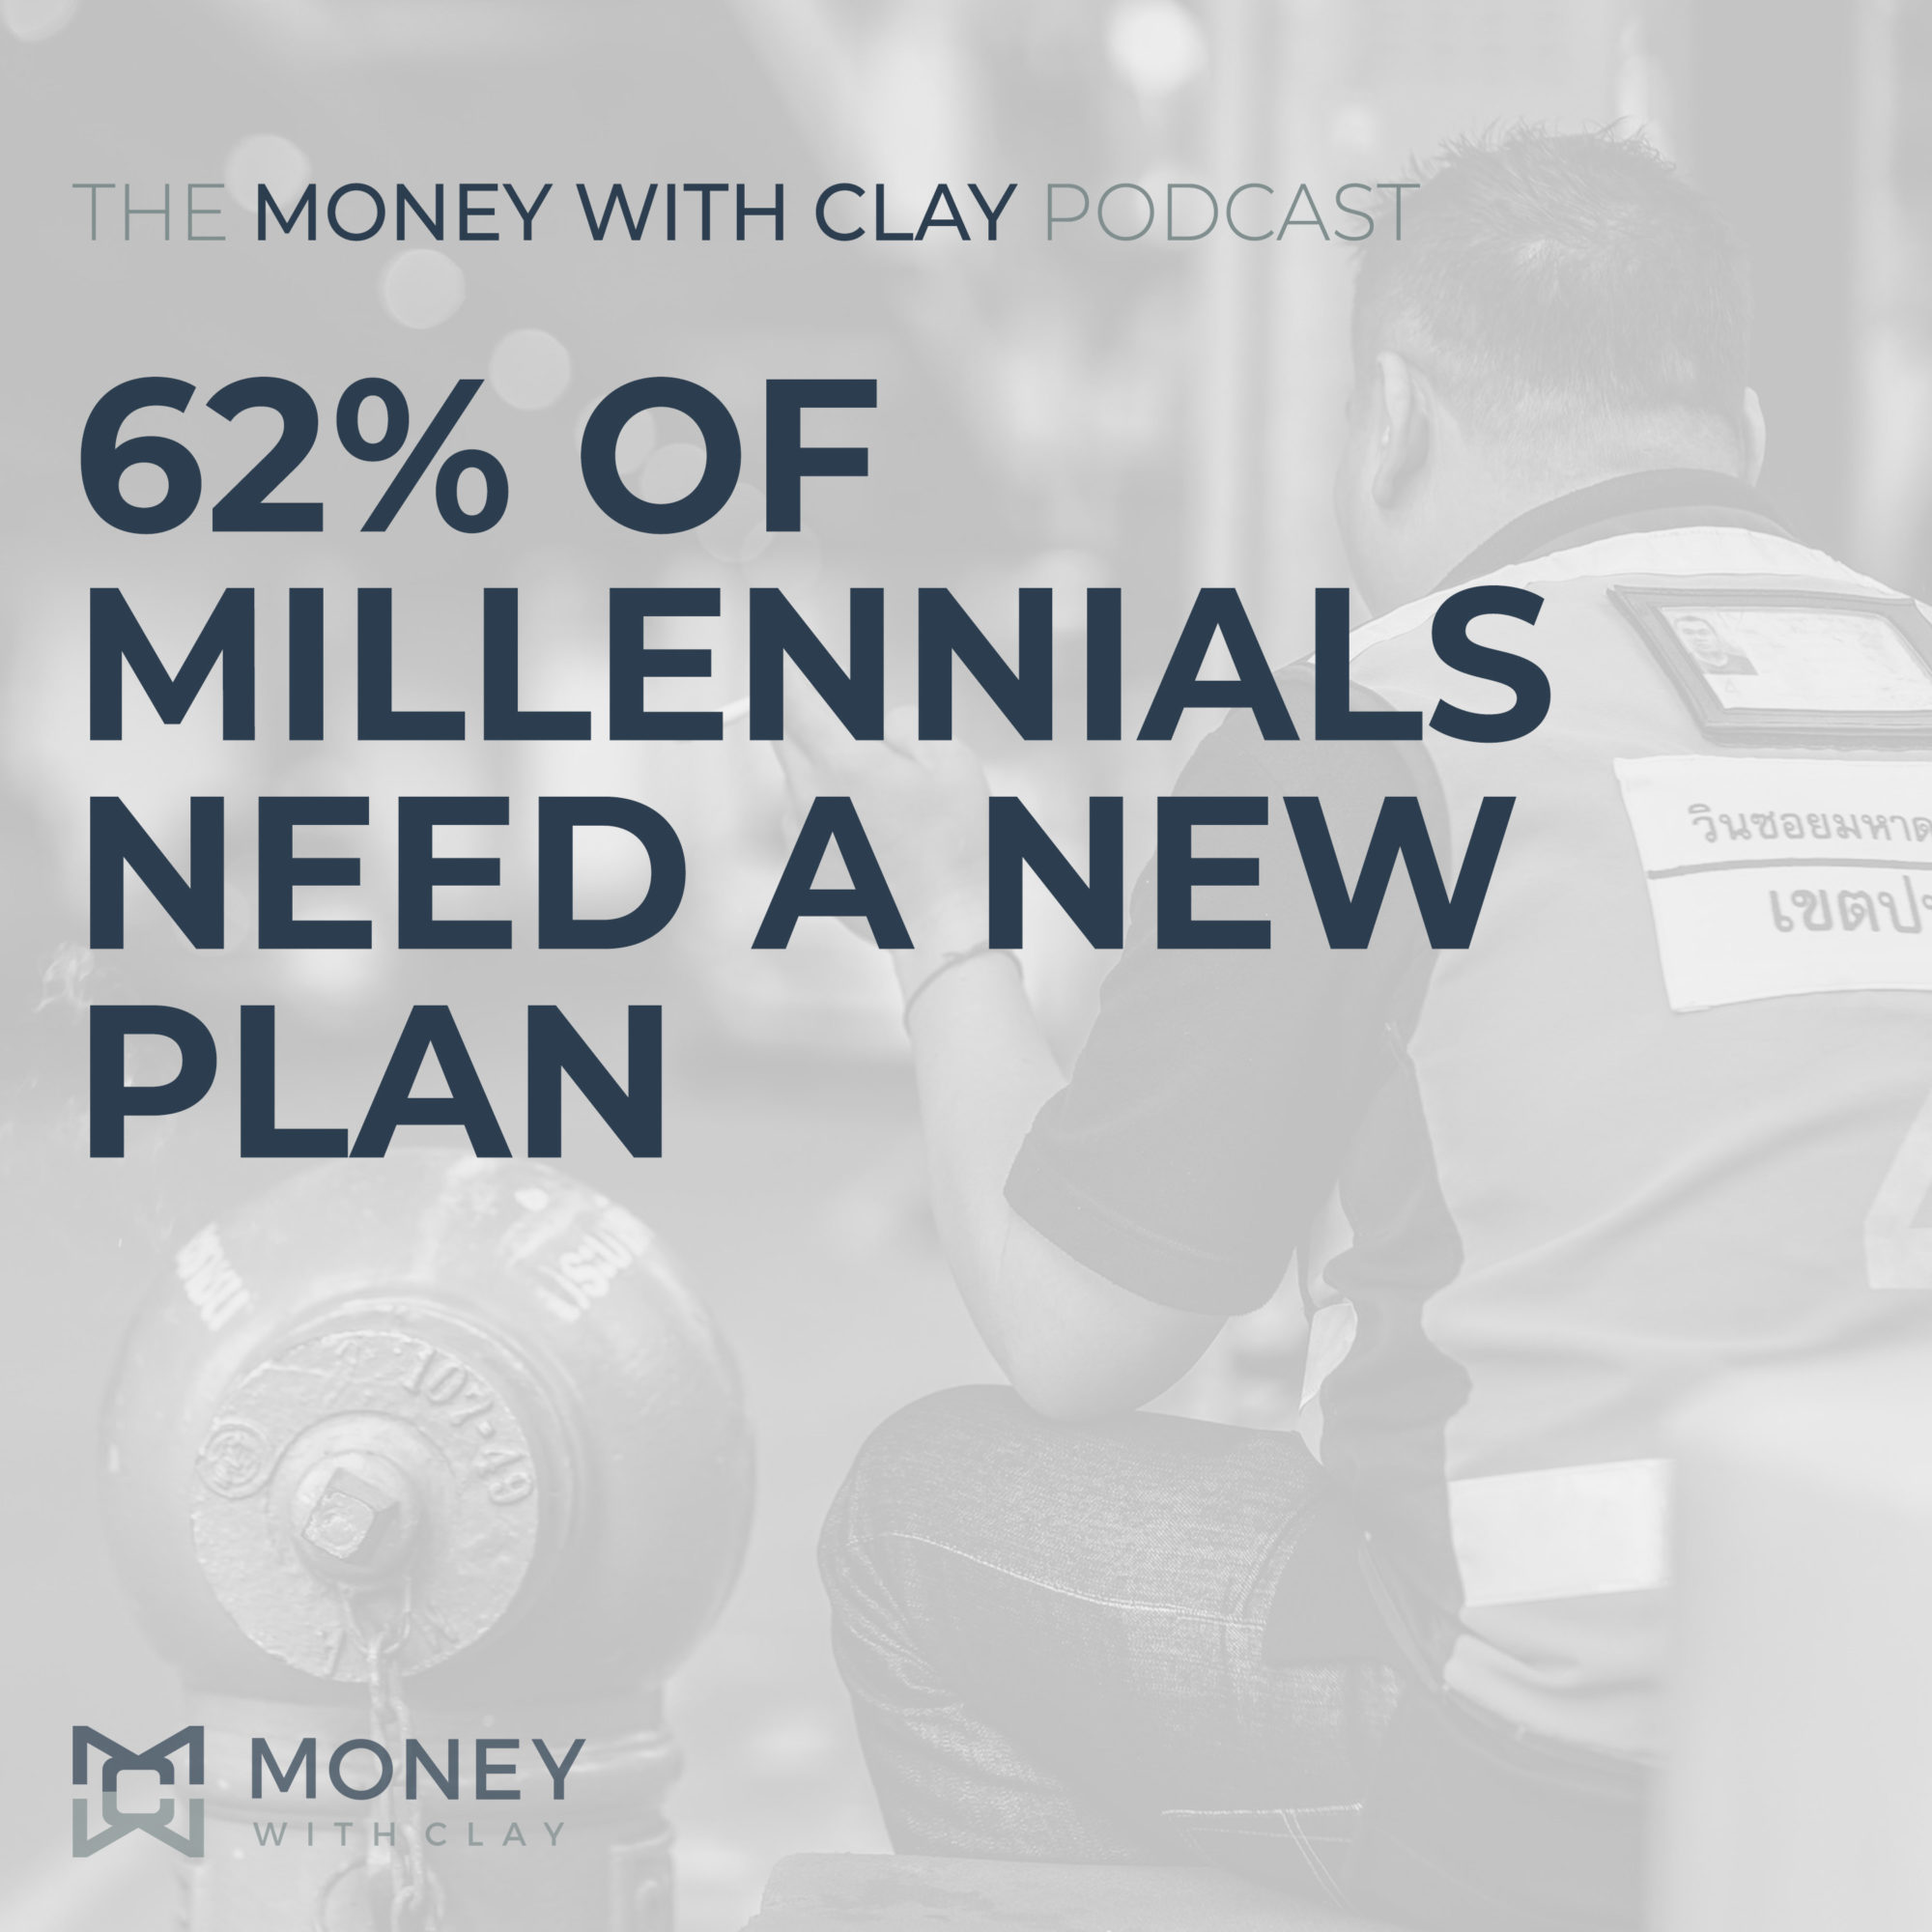 #053 - 62% Of Millennials Need a New Plan